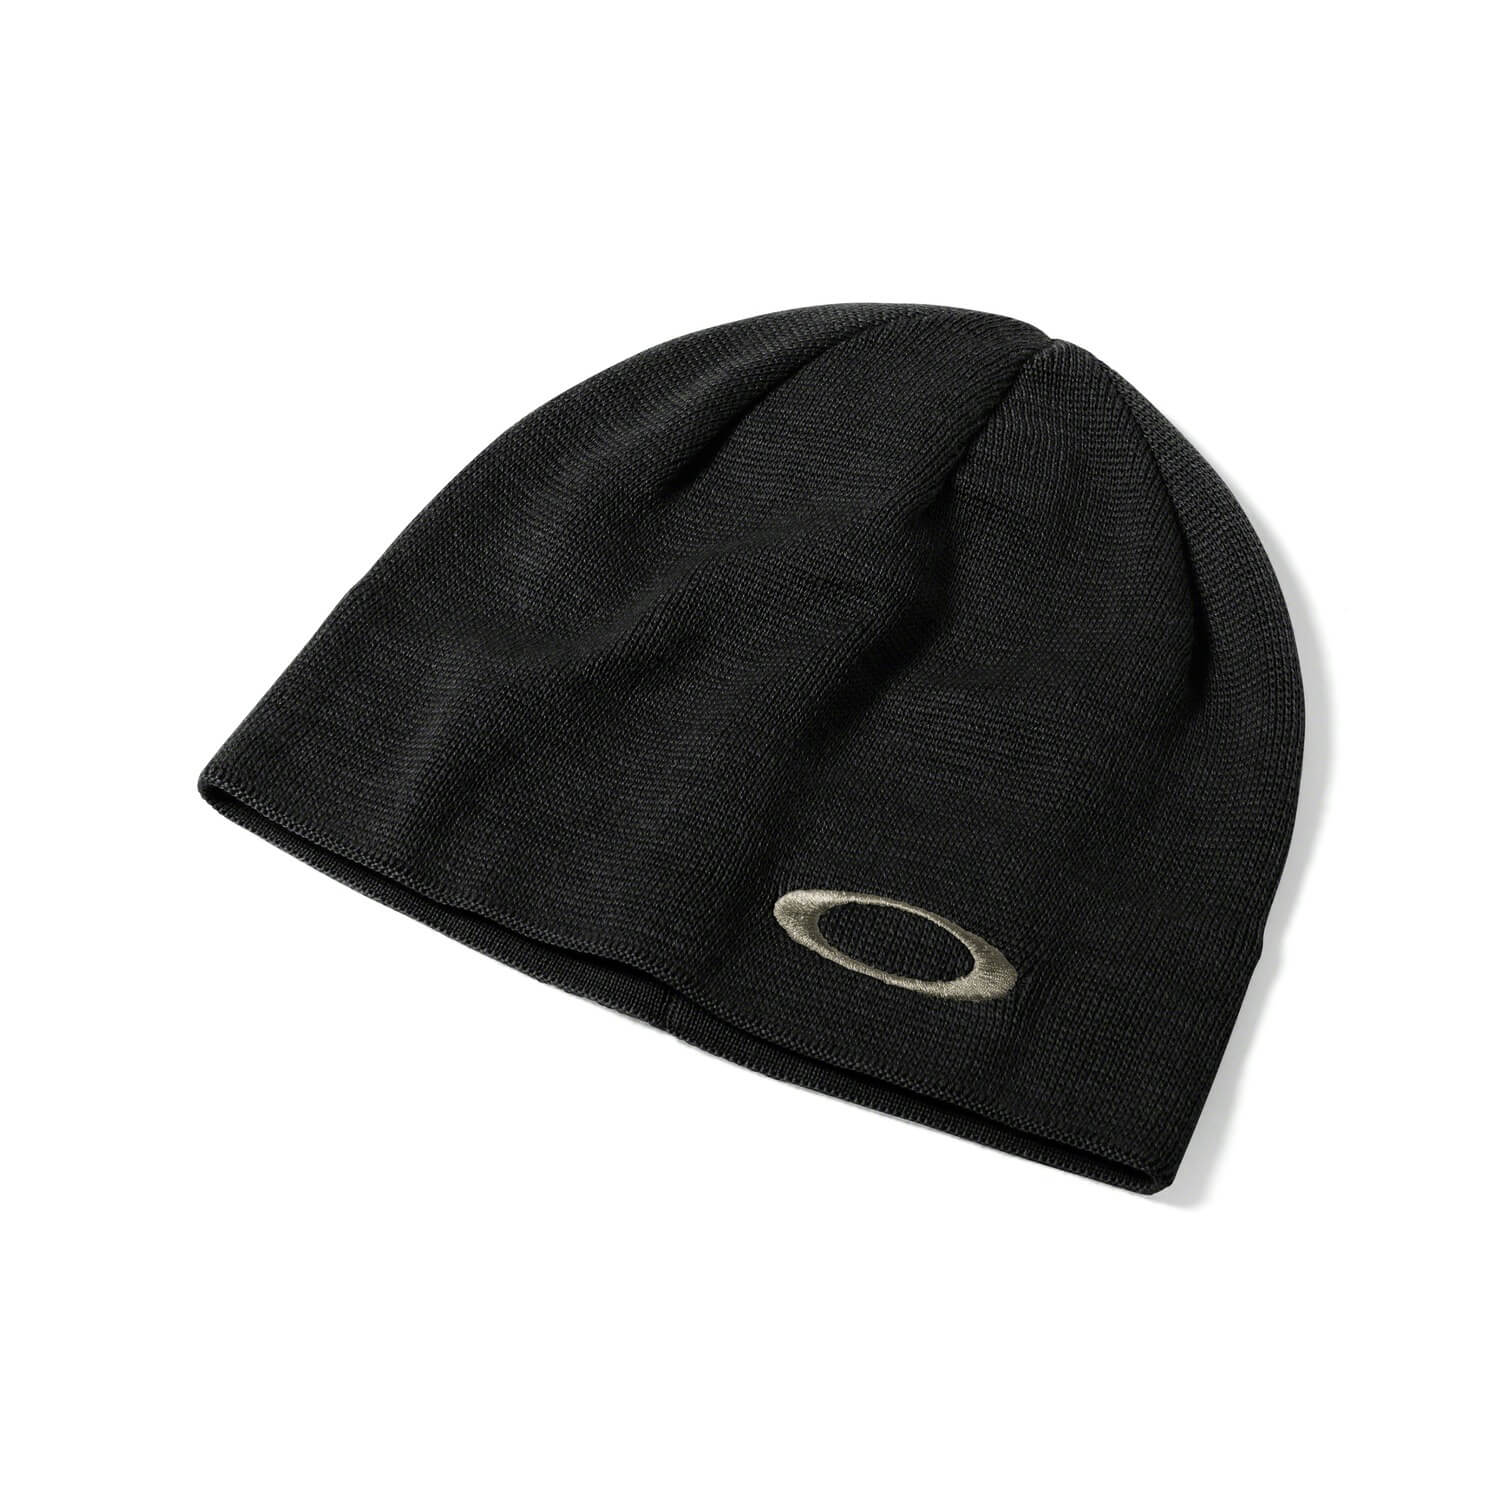 Oakley Tactical Beanie Black - Shoot Straight 8773a8720f1